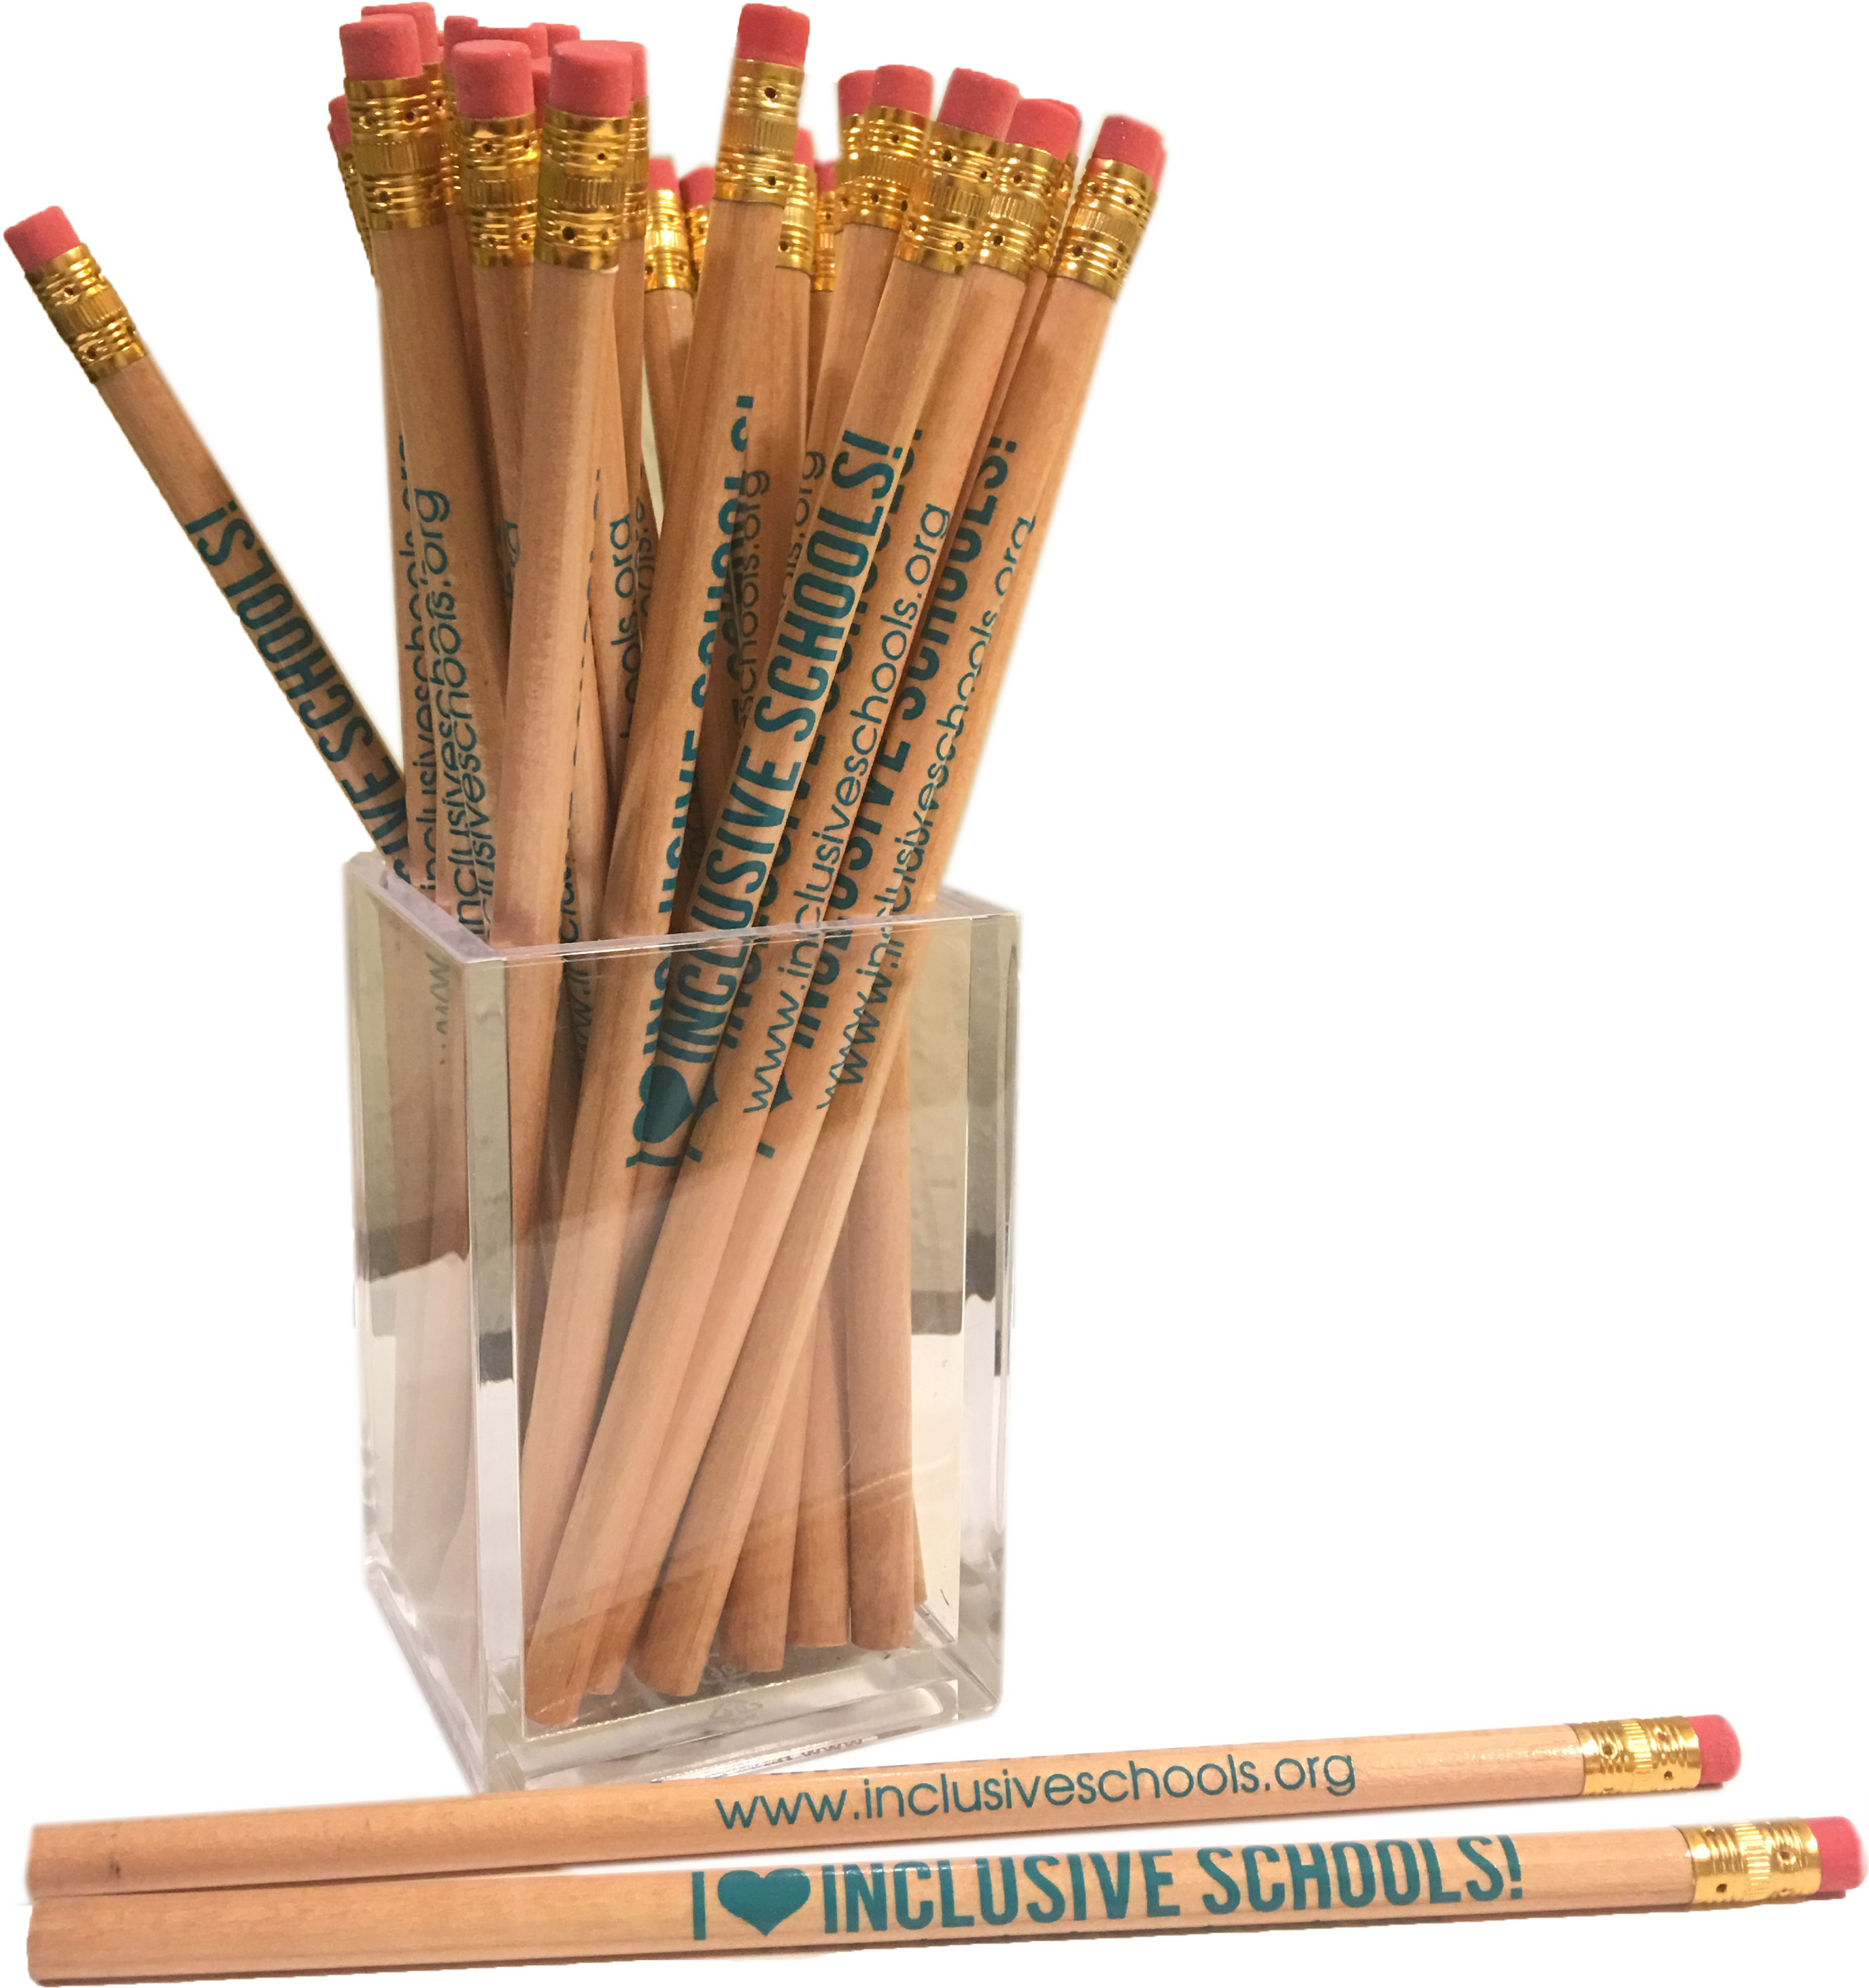 50 Count Bundle Pencils 00002